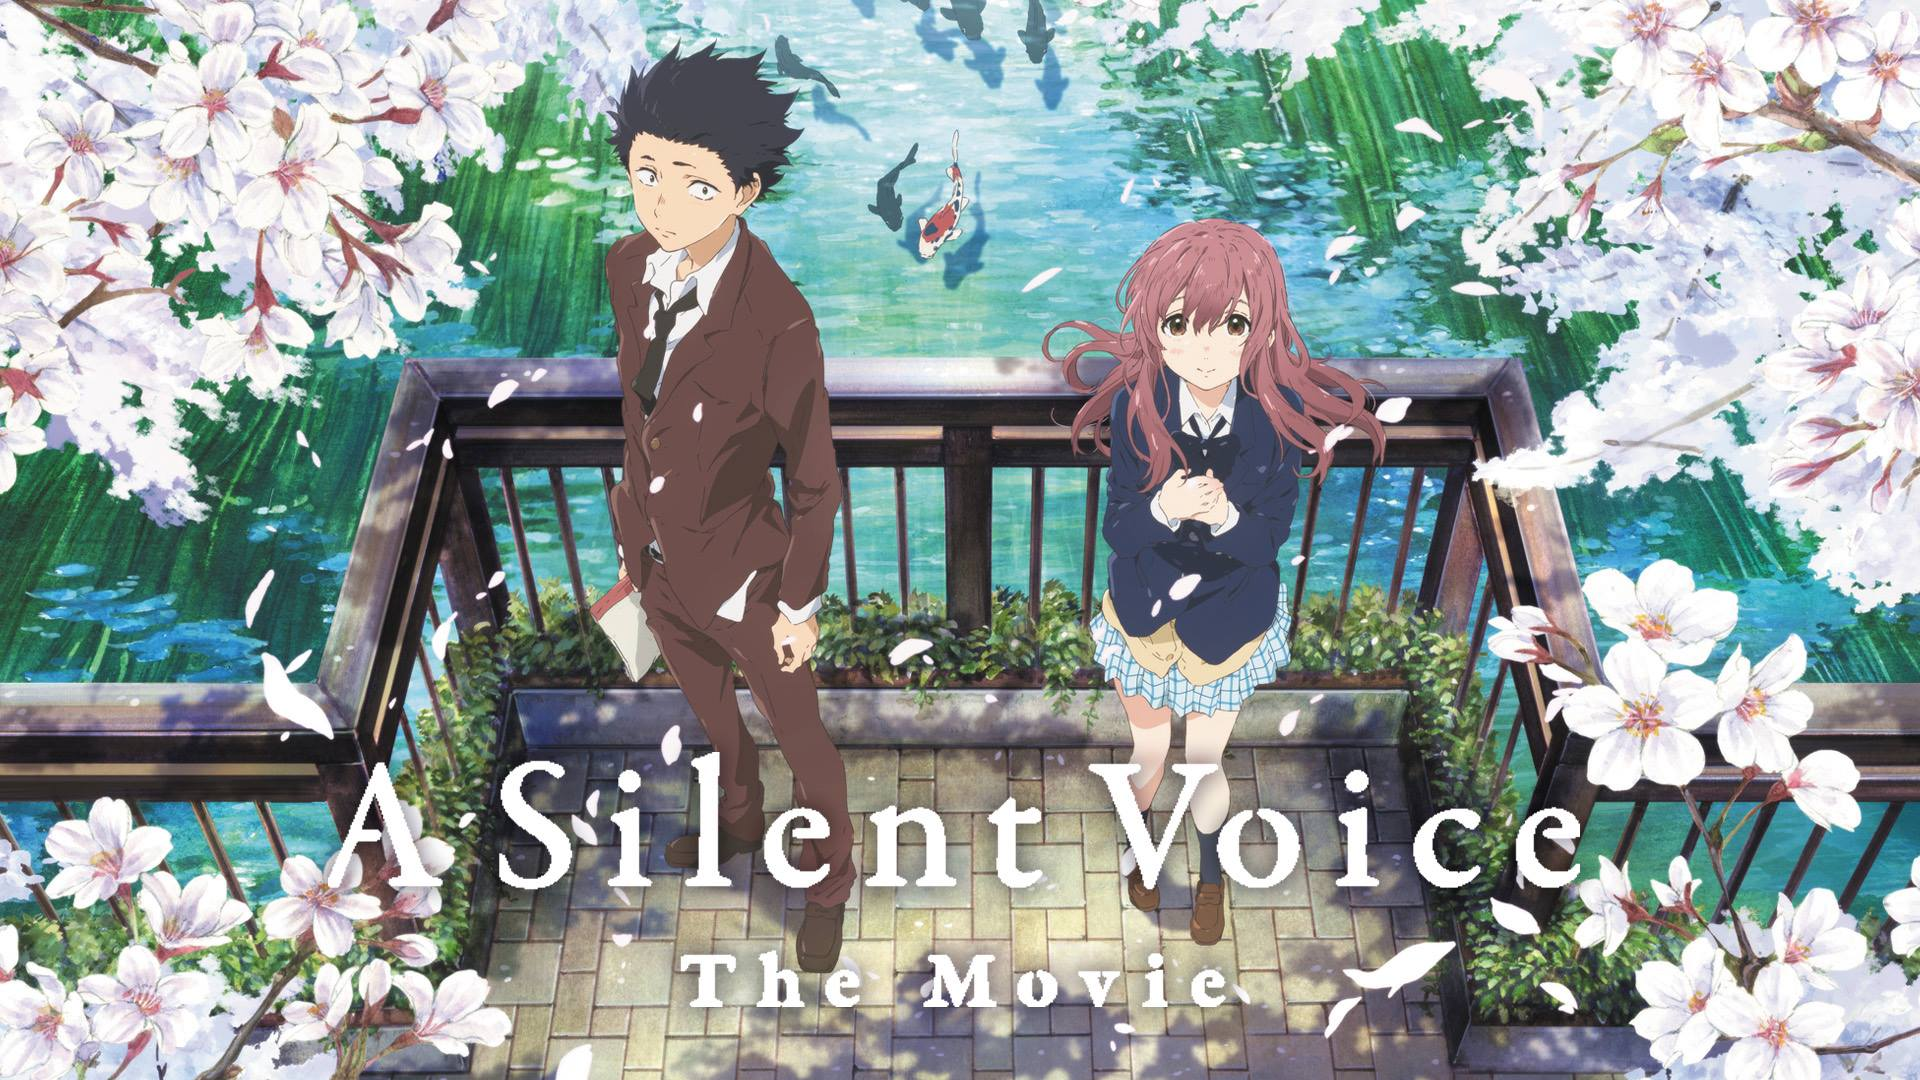 Review A Silent Voice is an unconventional tale of loss